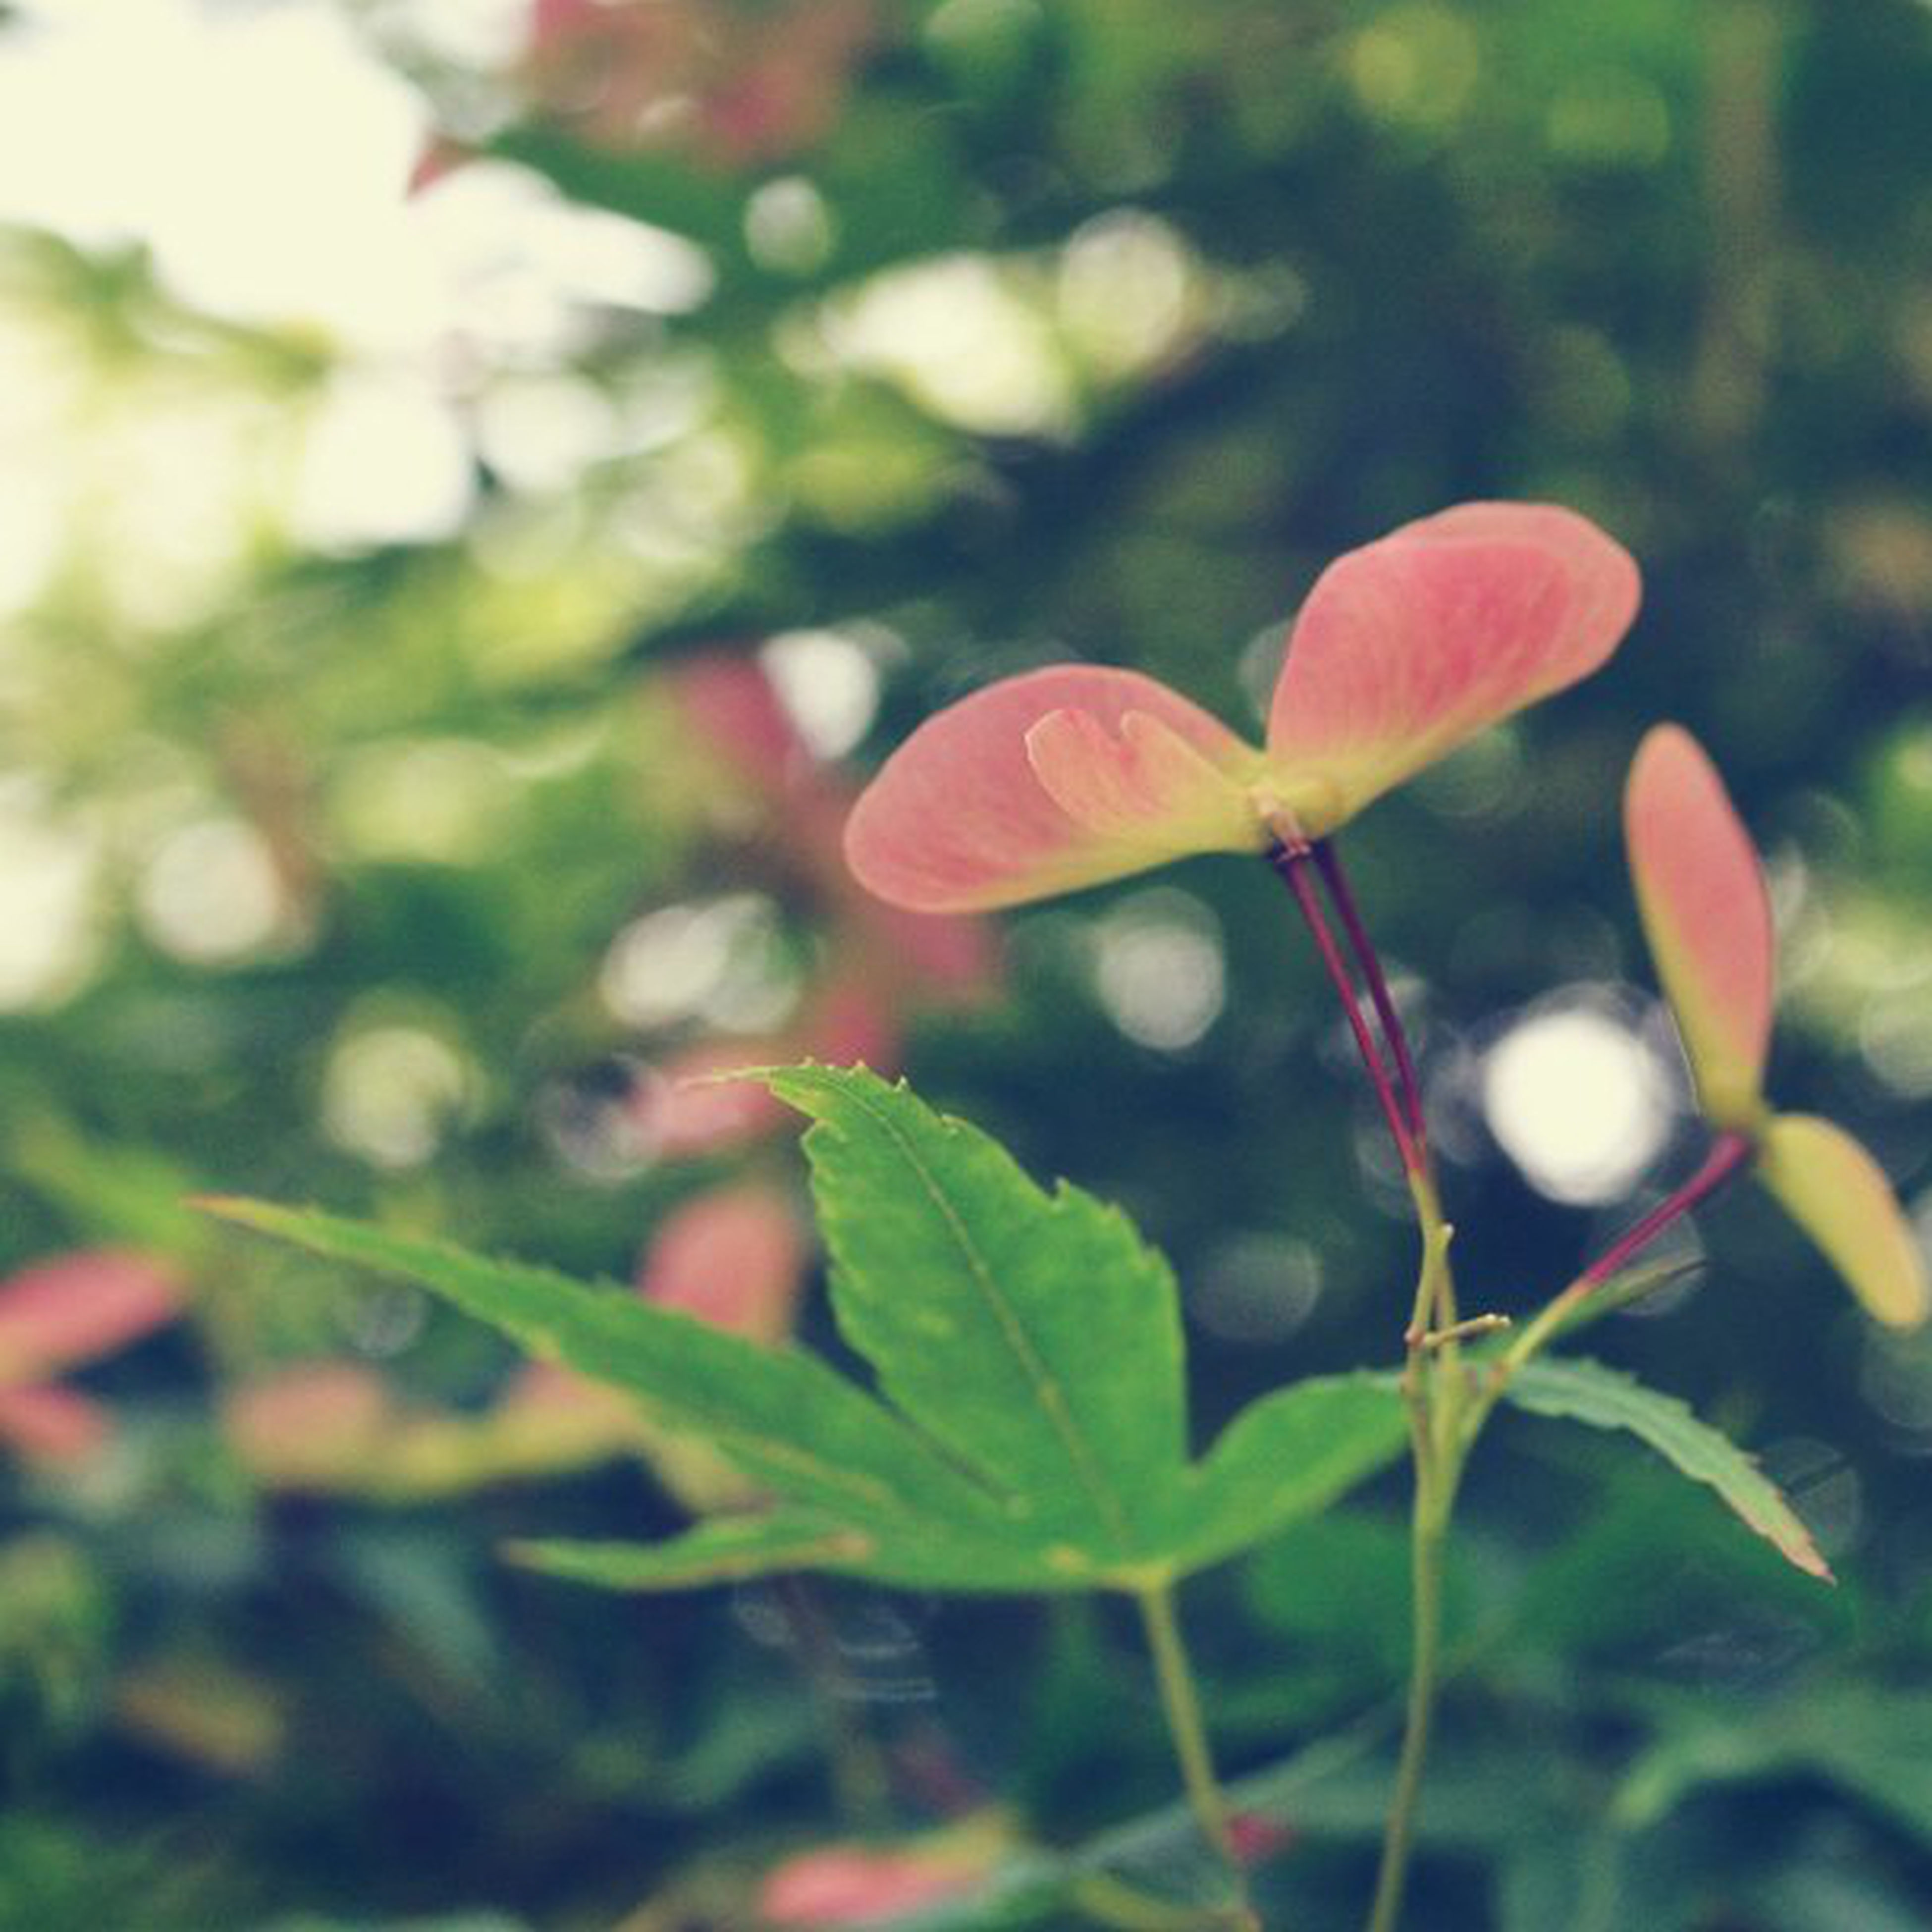 growth, focus on foreground, plant, close-up, freshness, red, leaf, nature, flower, beauty in nature, fragility, selective focus, green color, bud, stem, day, new life, outdoors, no people, beginnings